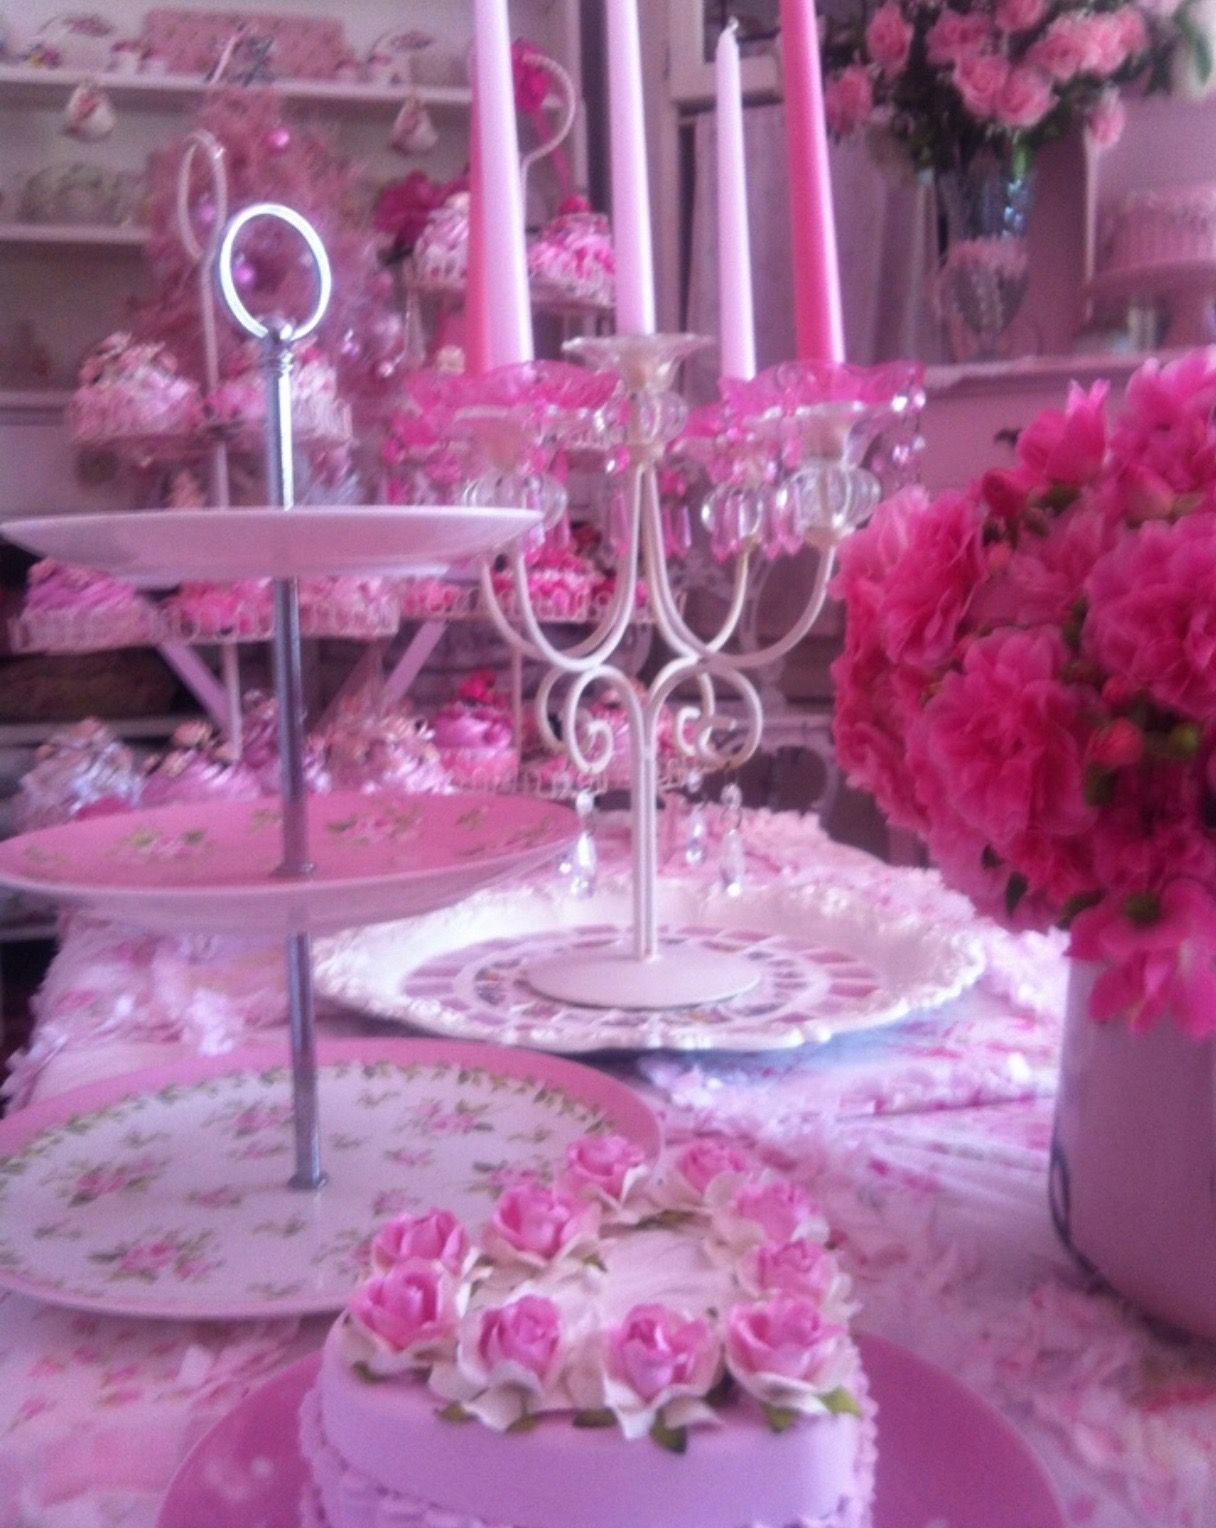 Pin by Denise Boulais on Shabby chic Pinterest Shabby Teas and